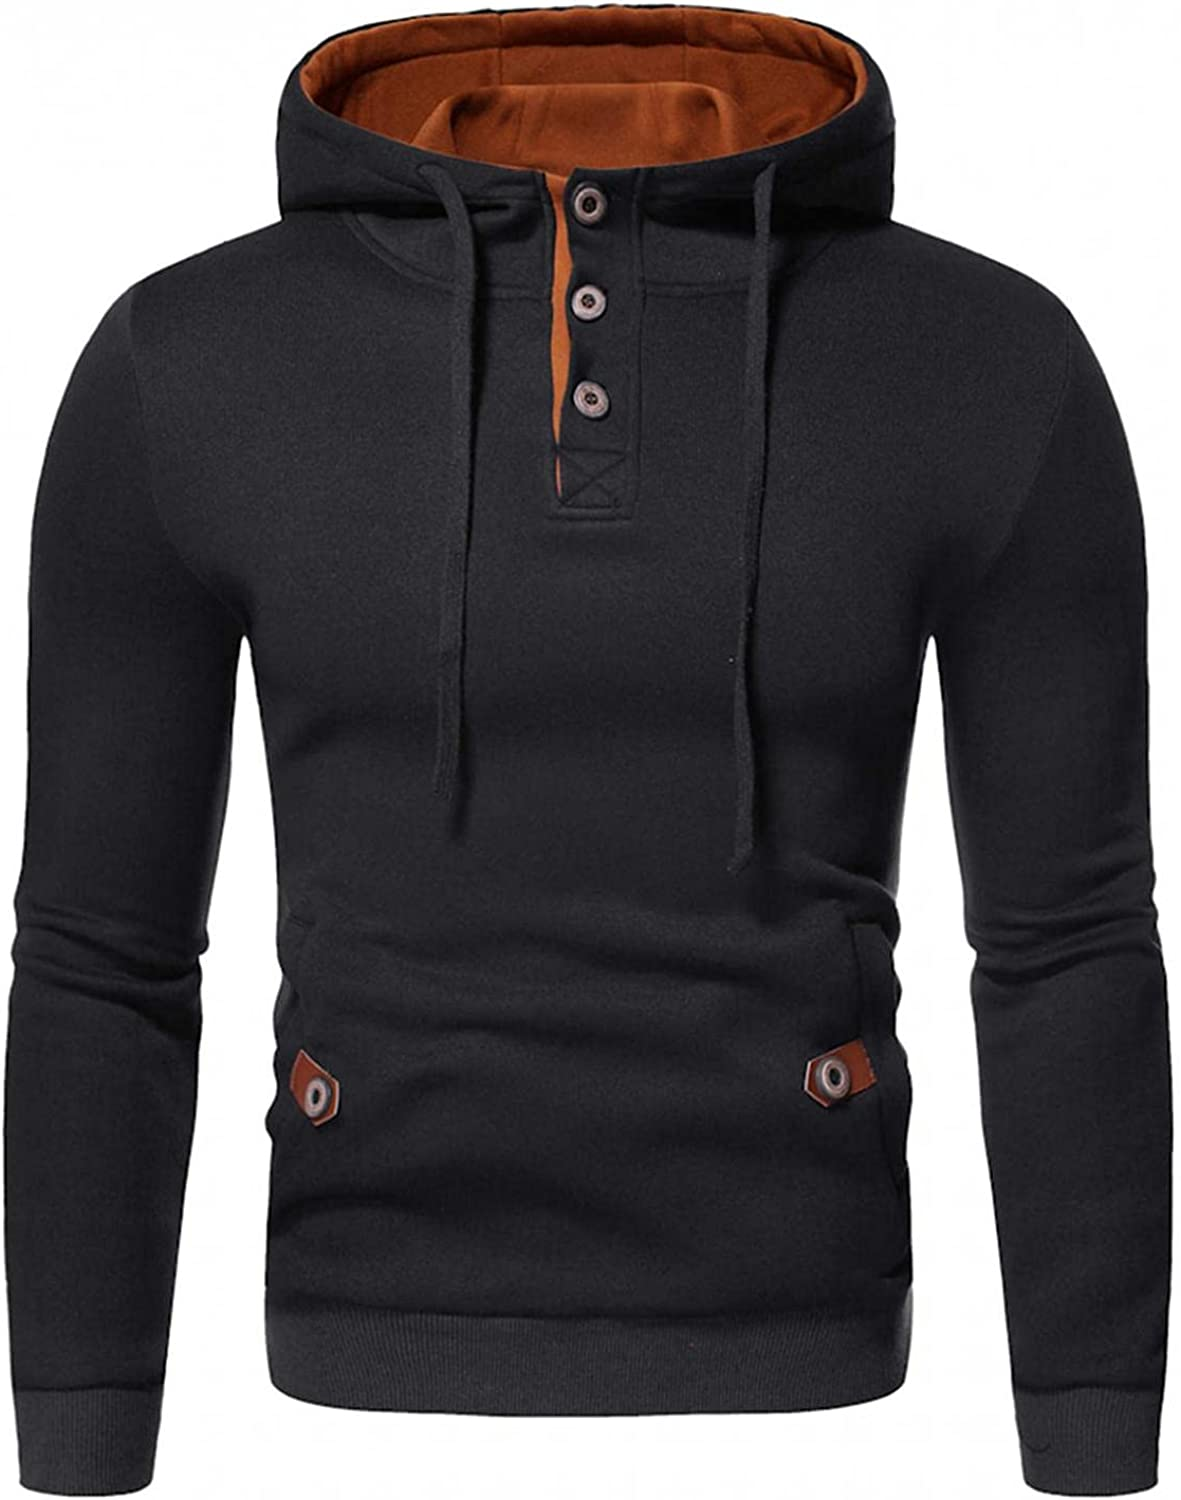 Qsctys Pullover Hooded Men V Neck Button Down Fashion Athletic Hoodies Long Sleeve Slim Fit Sweatshirts with Kanga Pockets